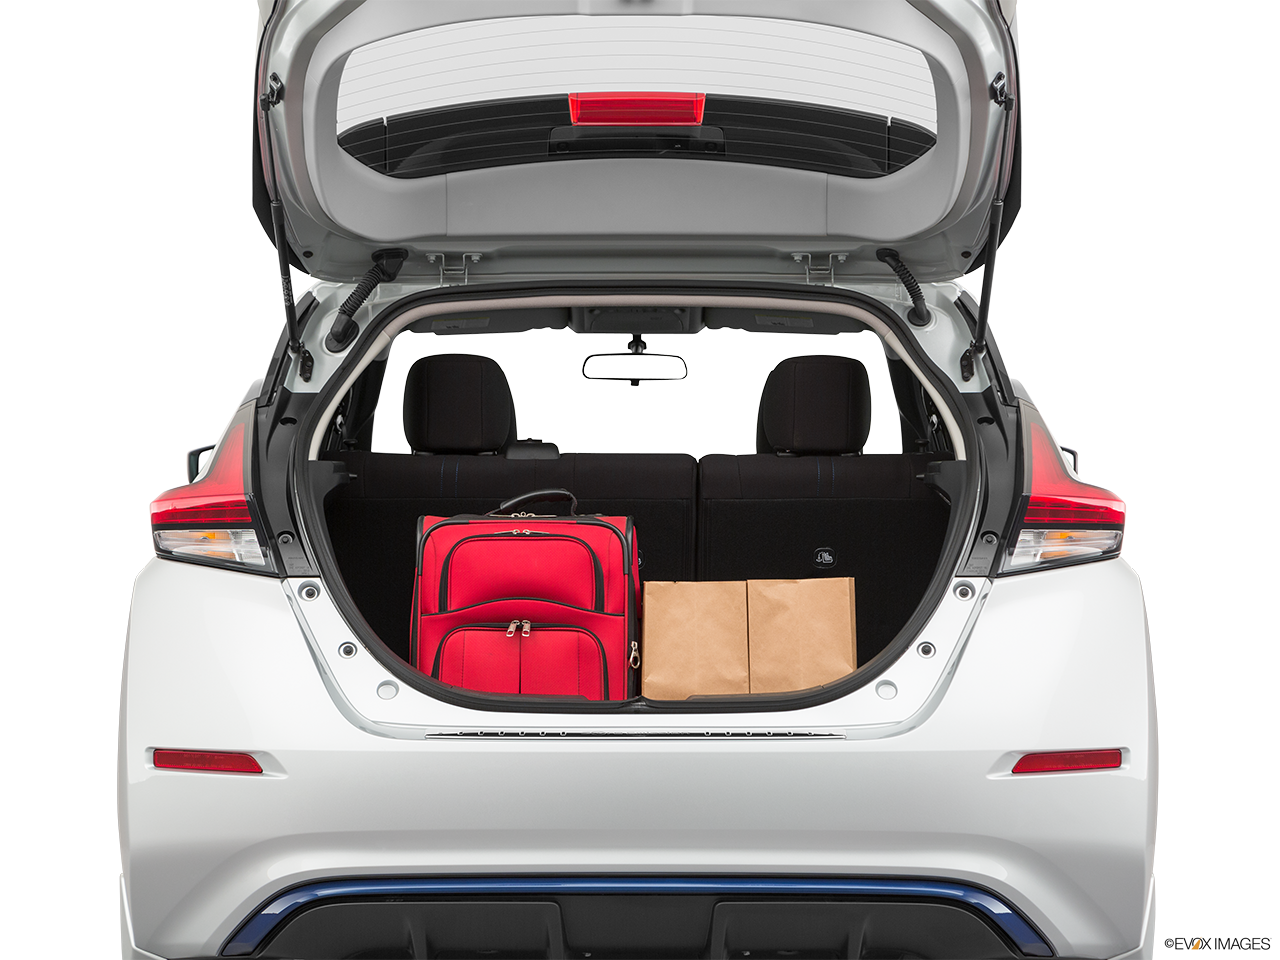 Trunk view of the Nissan LEAF